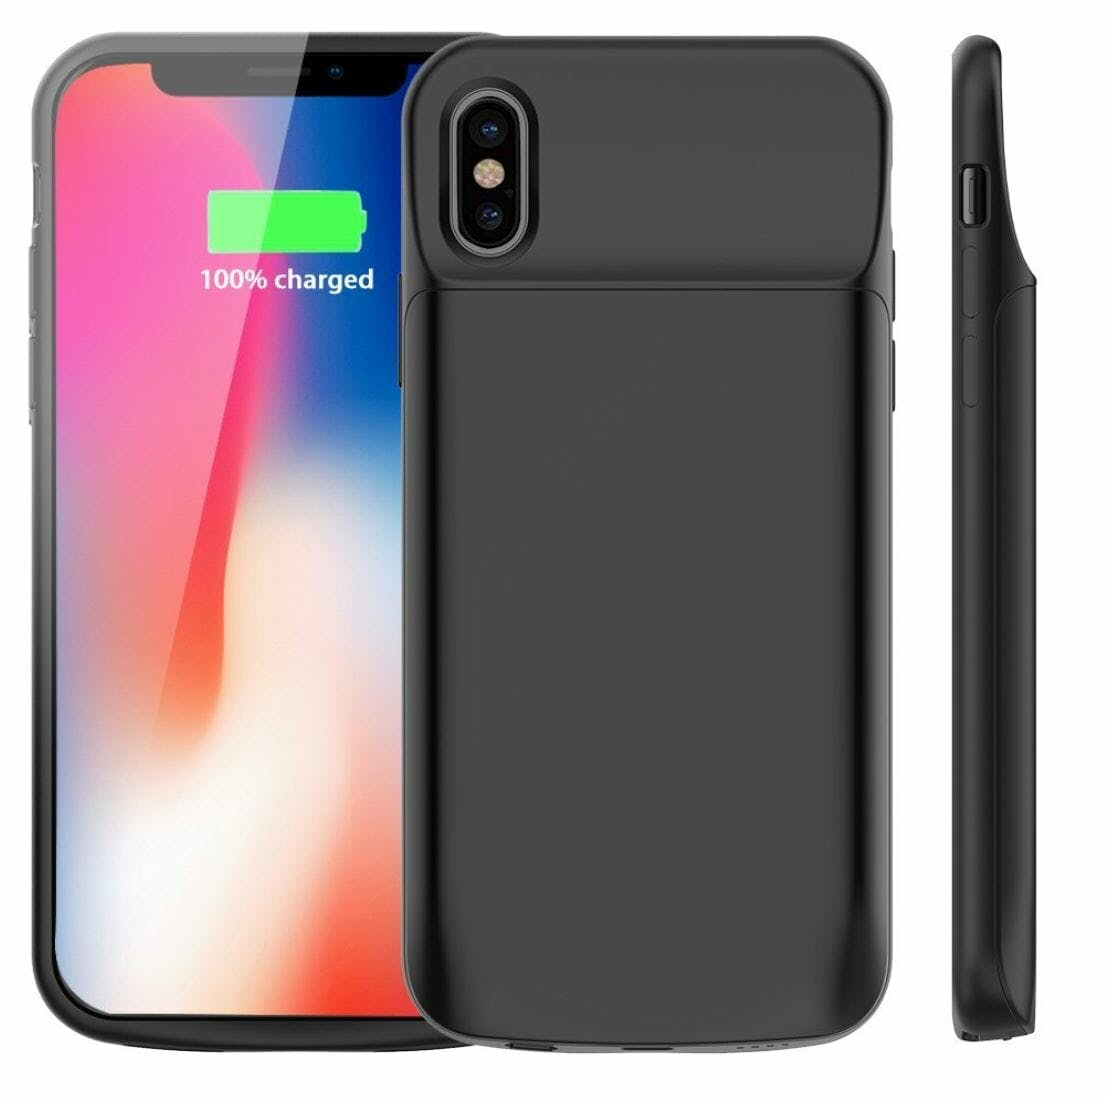 iphone x case vproof battery 6,000mah case